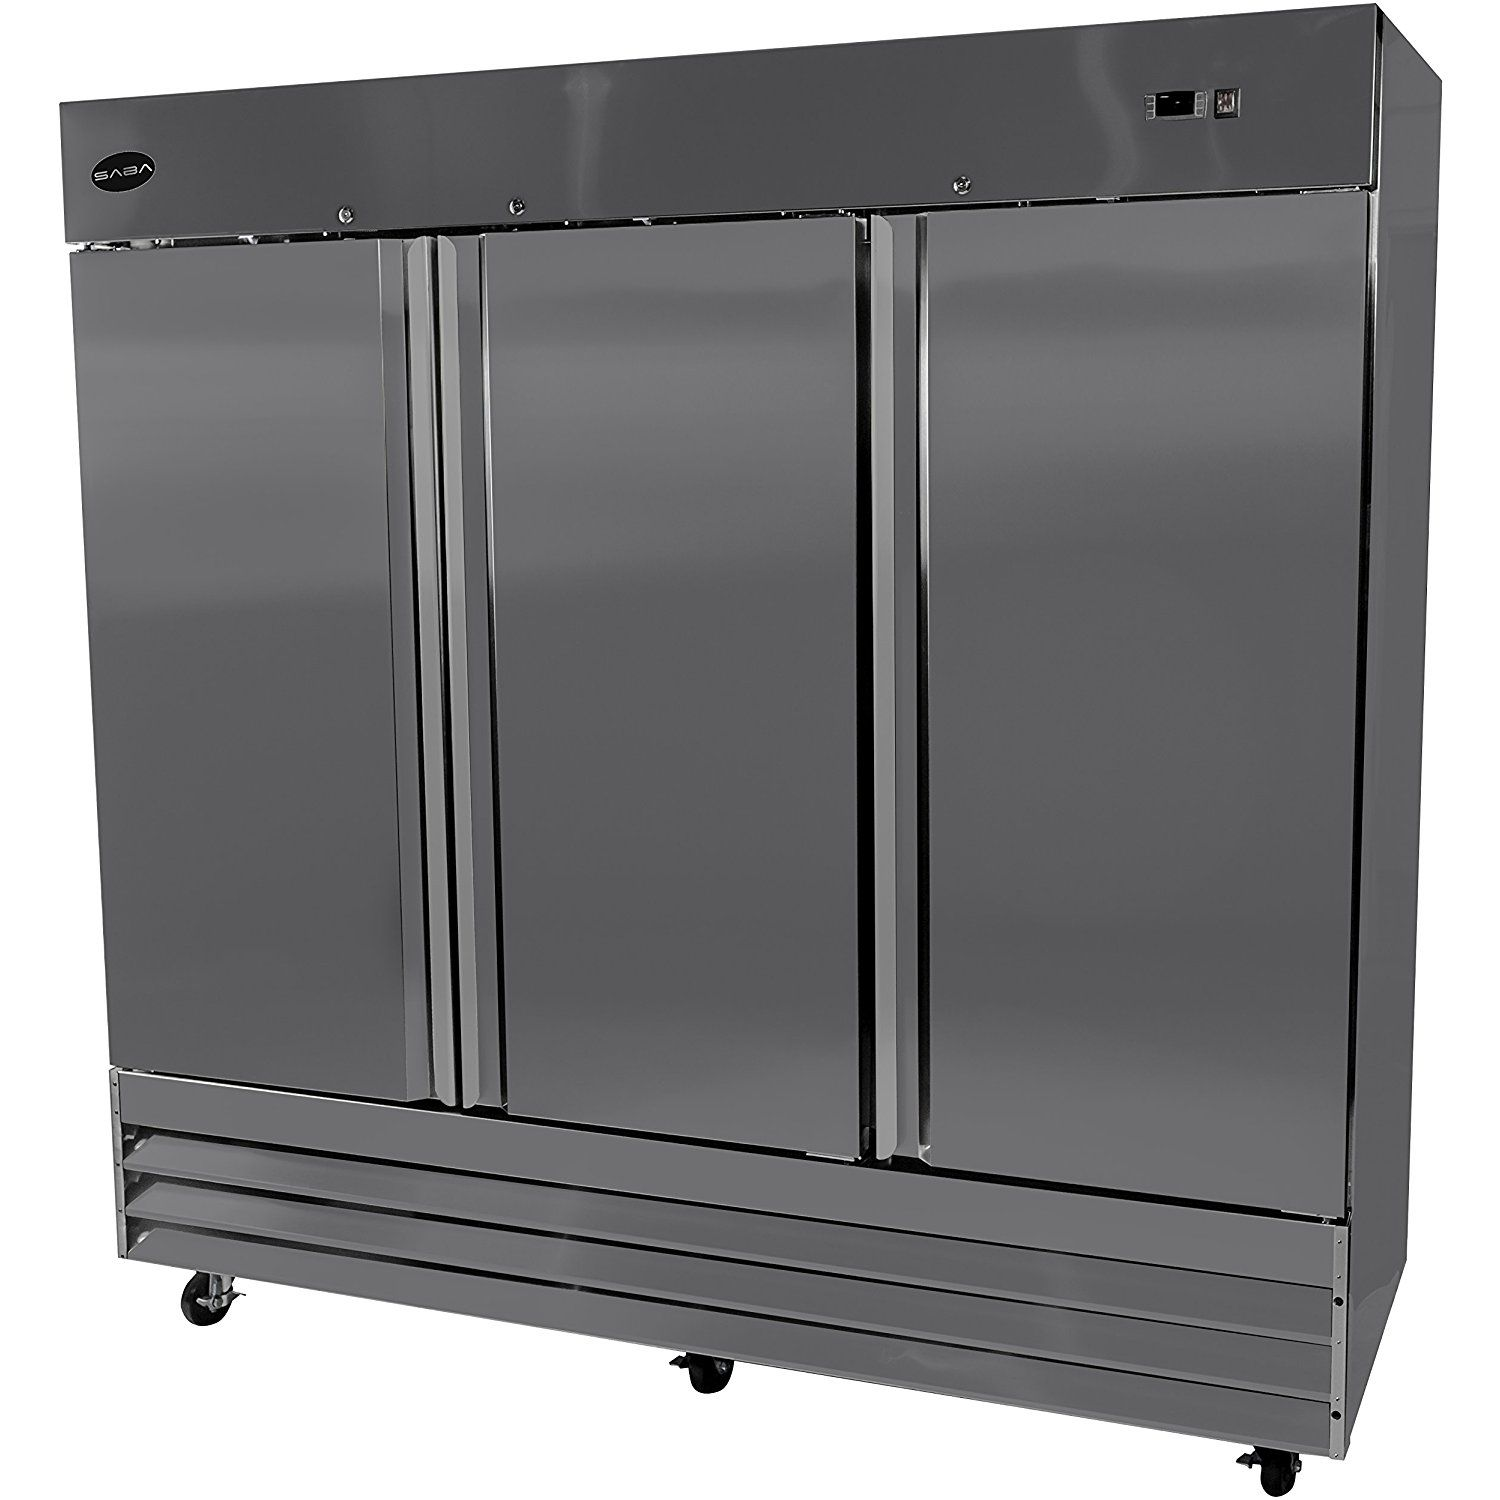 Heavy Duty Commercial Stainless Steel Reach In Refrigerator 81 Three Solid Door For More In Solid Doors Adjustable Shelving Stainless Steel Doors